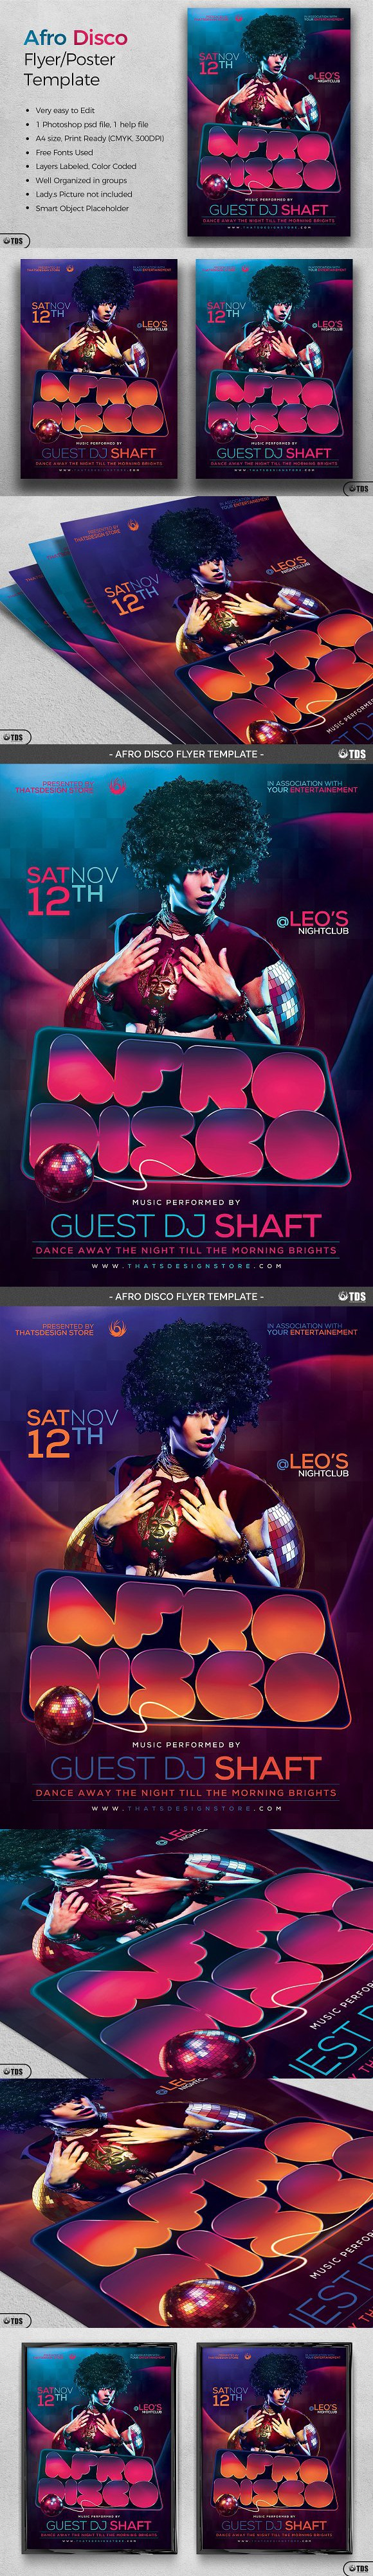 Afro Disco Flyer Template Flyer Templates  Flyer Templates